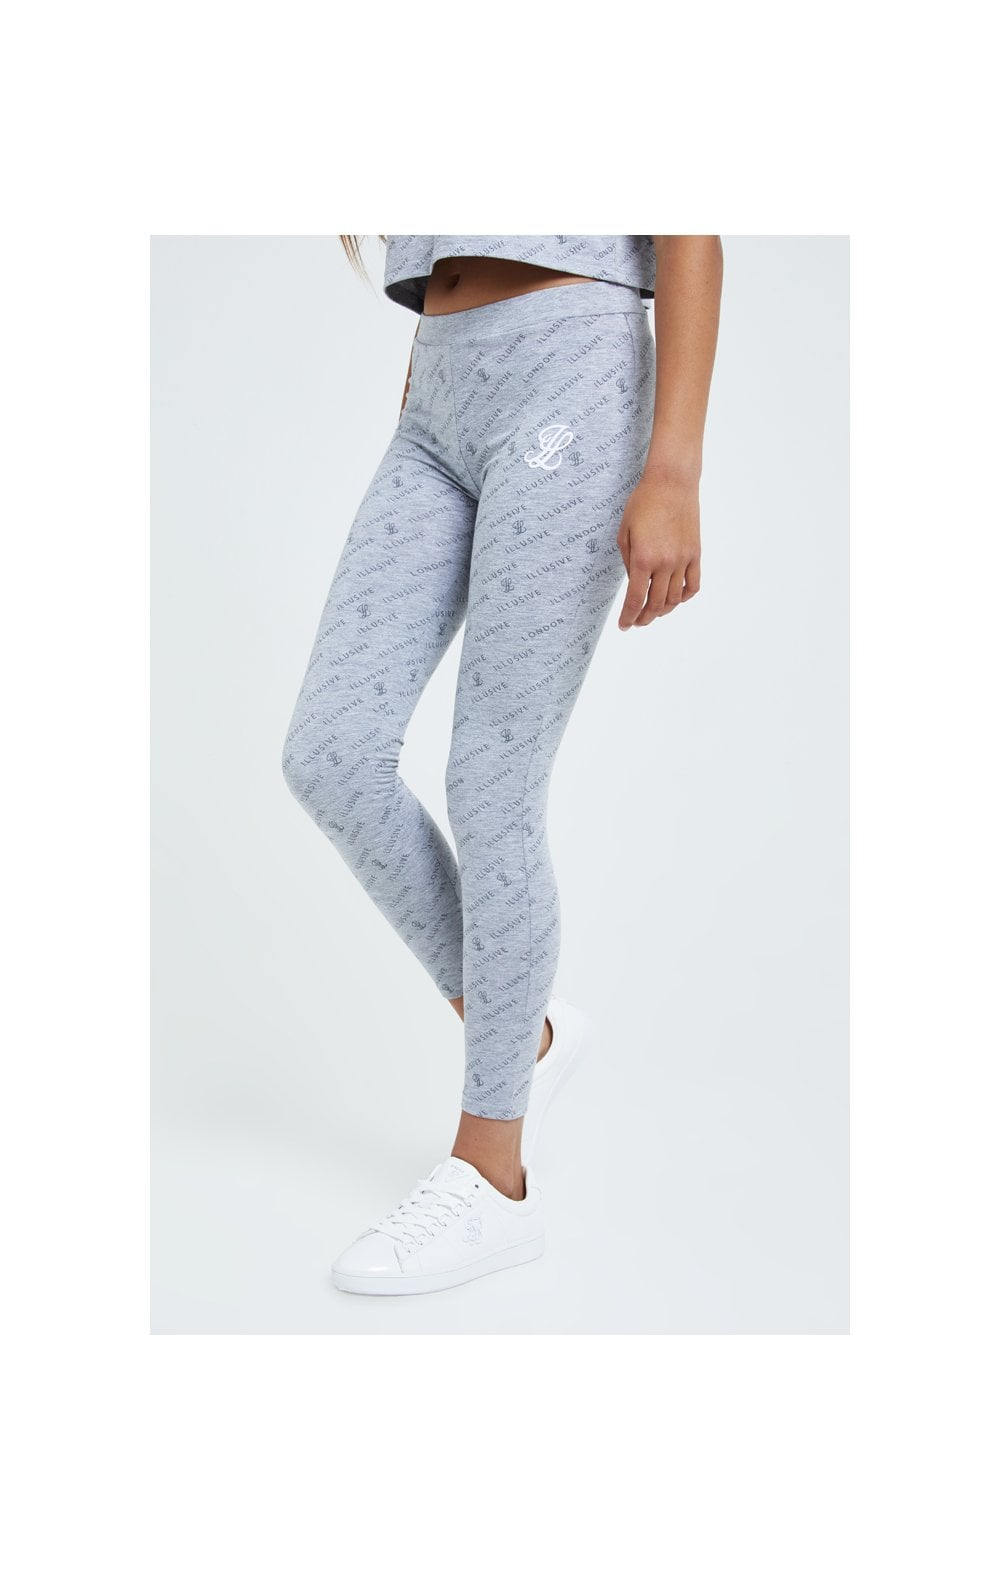 Illusive London Aop Legging - Grey Marl